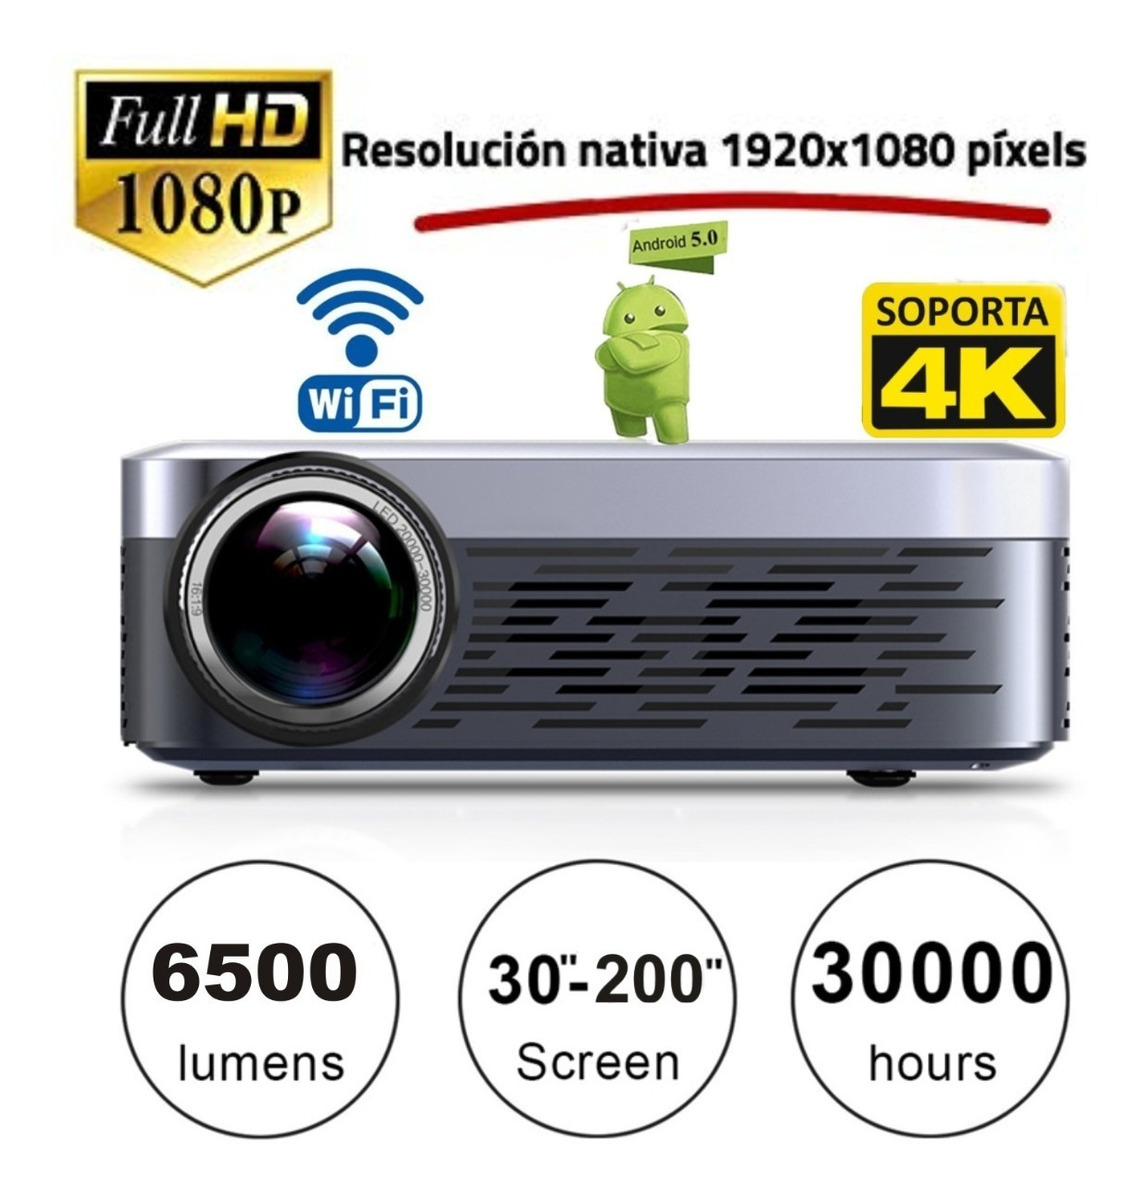 https://http2.mlstatic.com/proyector-led-6500-lumens-wifi-android-51-full-hd-nativo-D_NQ_NP_775723-MLA31356537217_072019-F.jpg